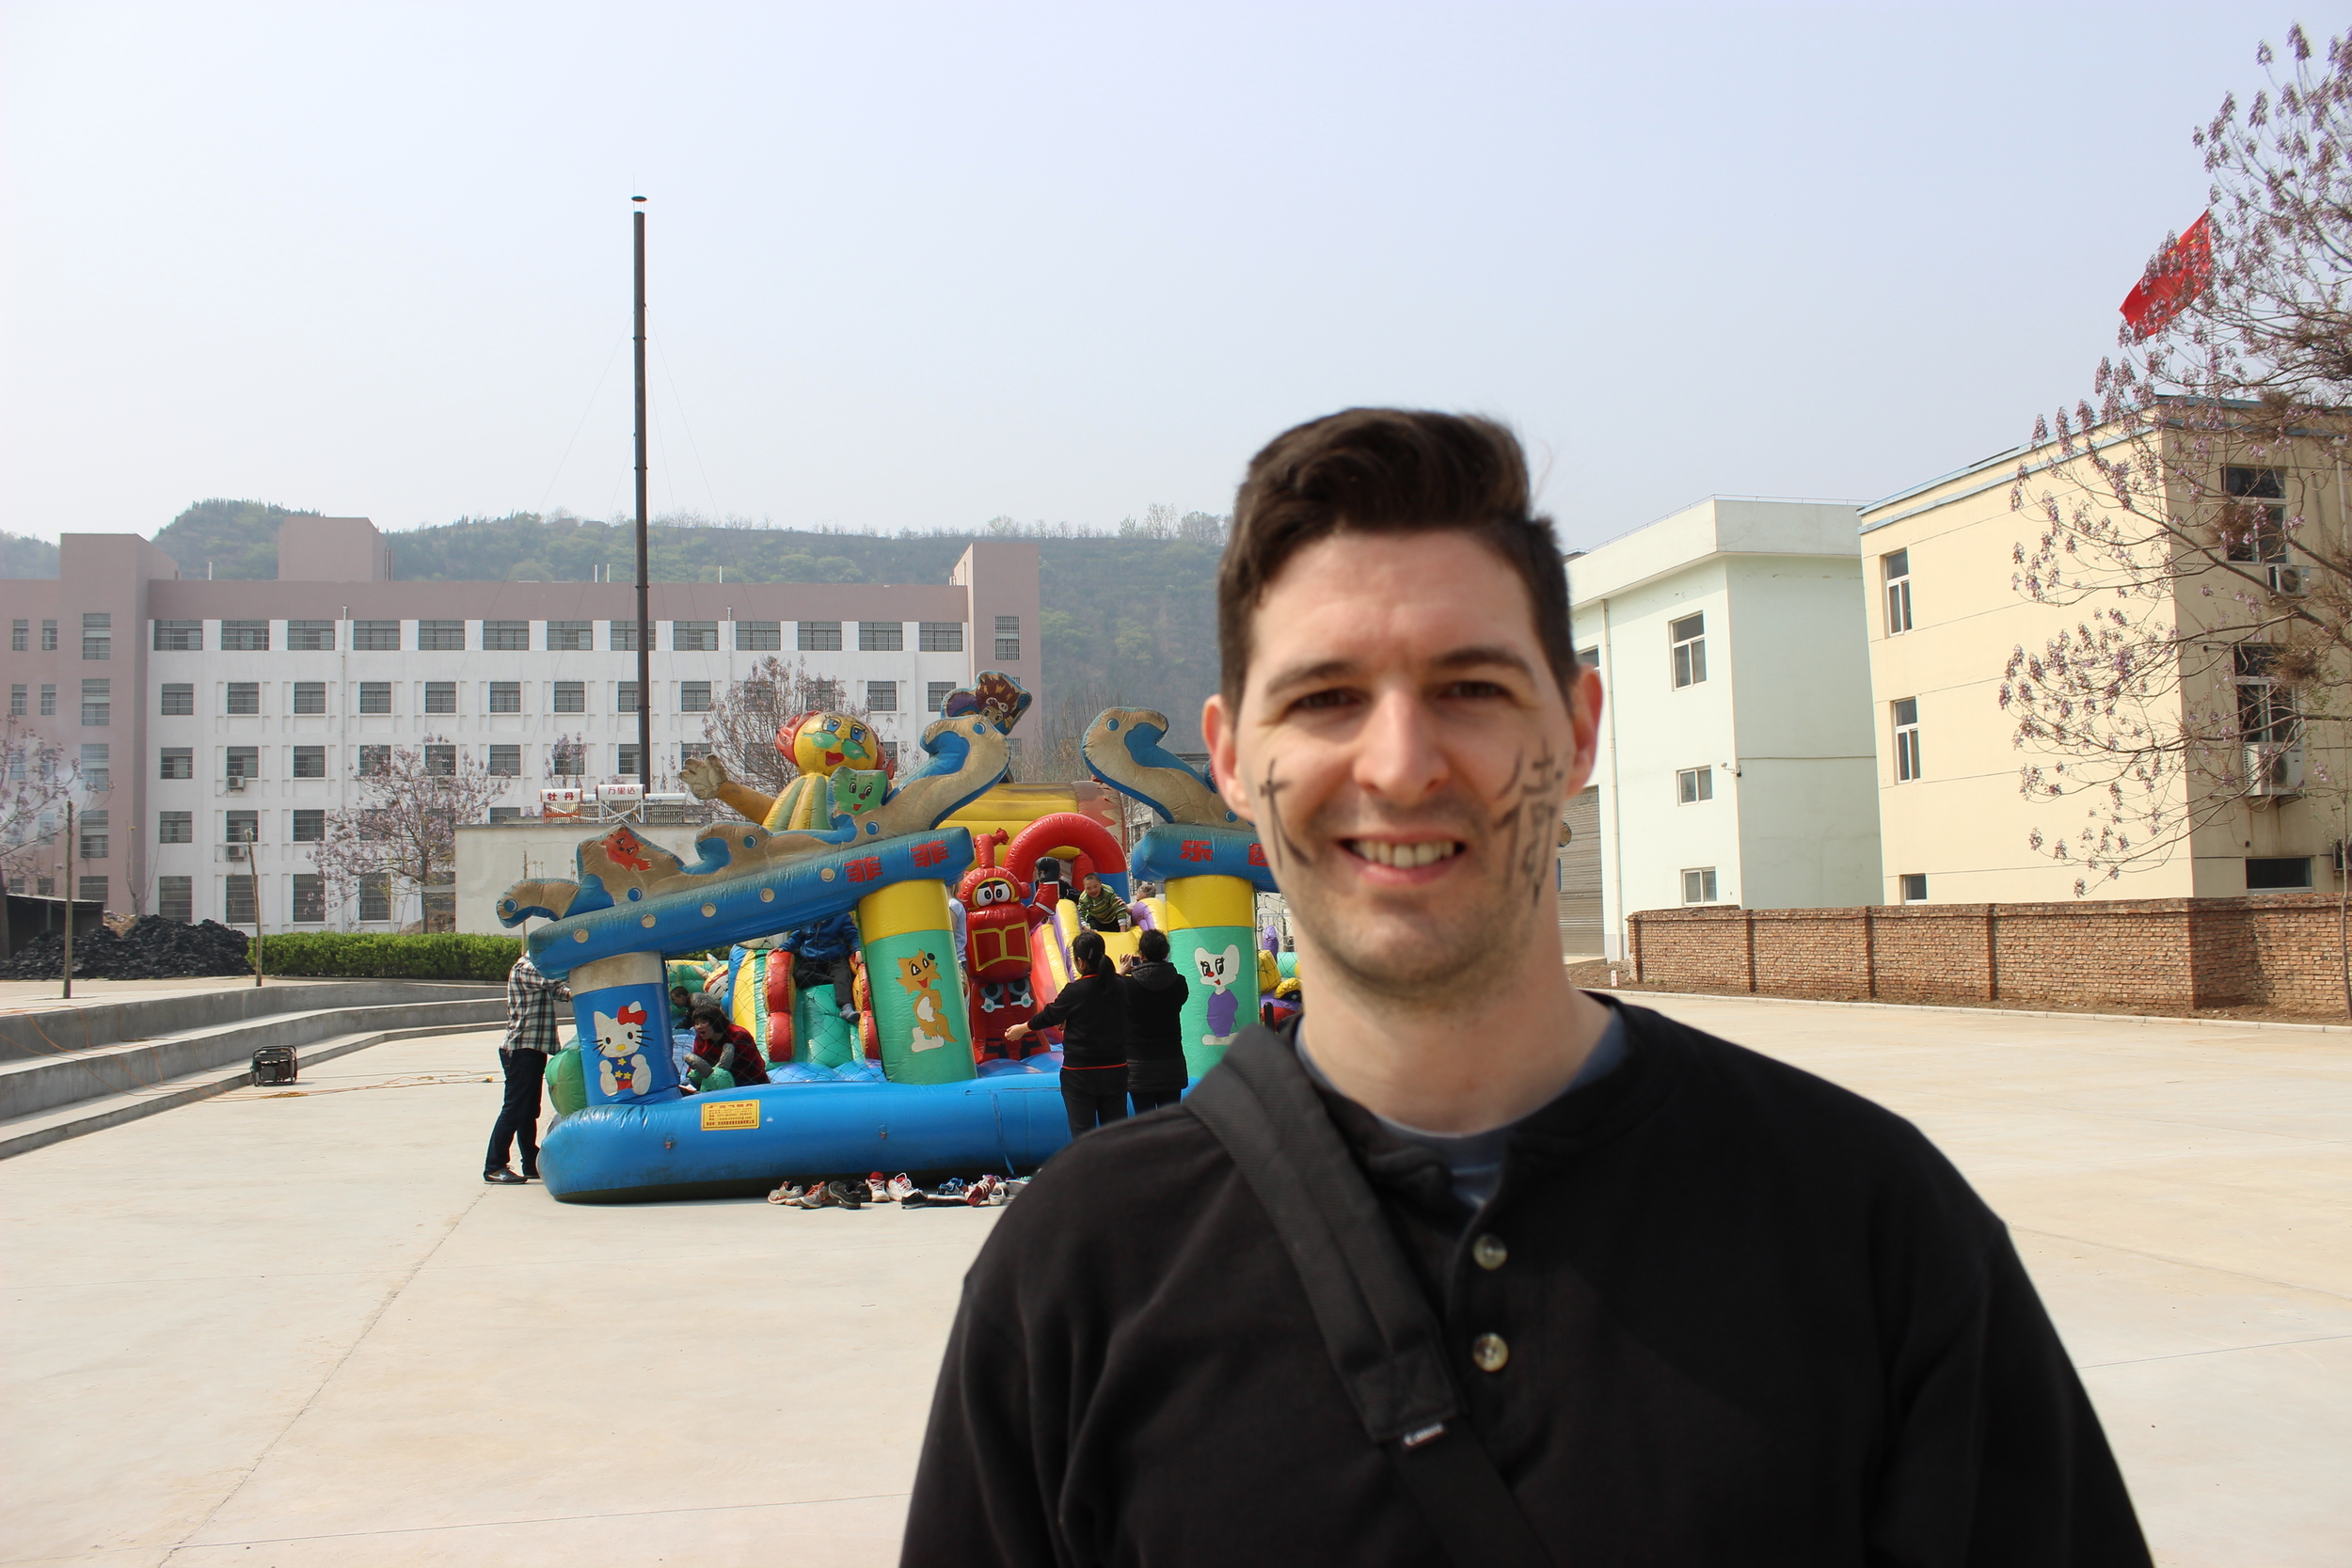 Dave with his Mandarin name on his cheeks in front of the bouncy castle.